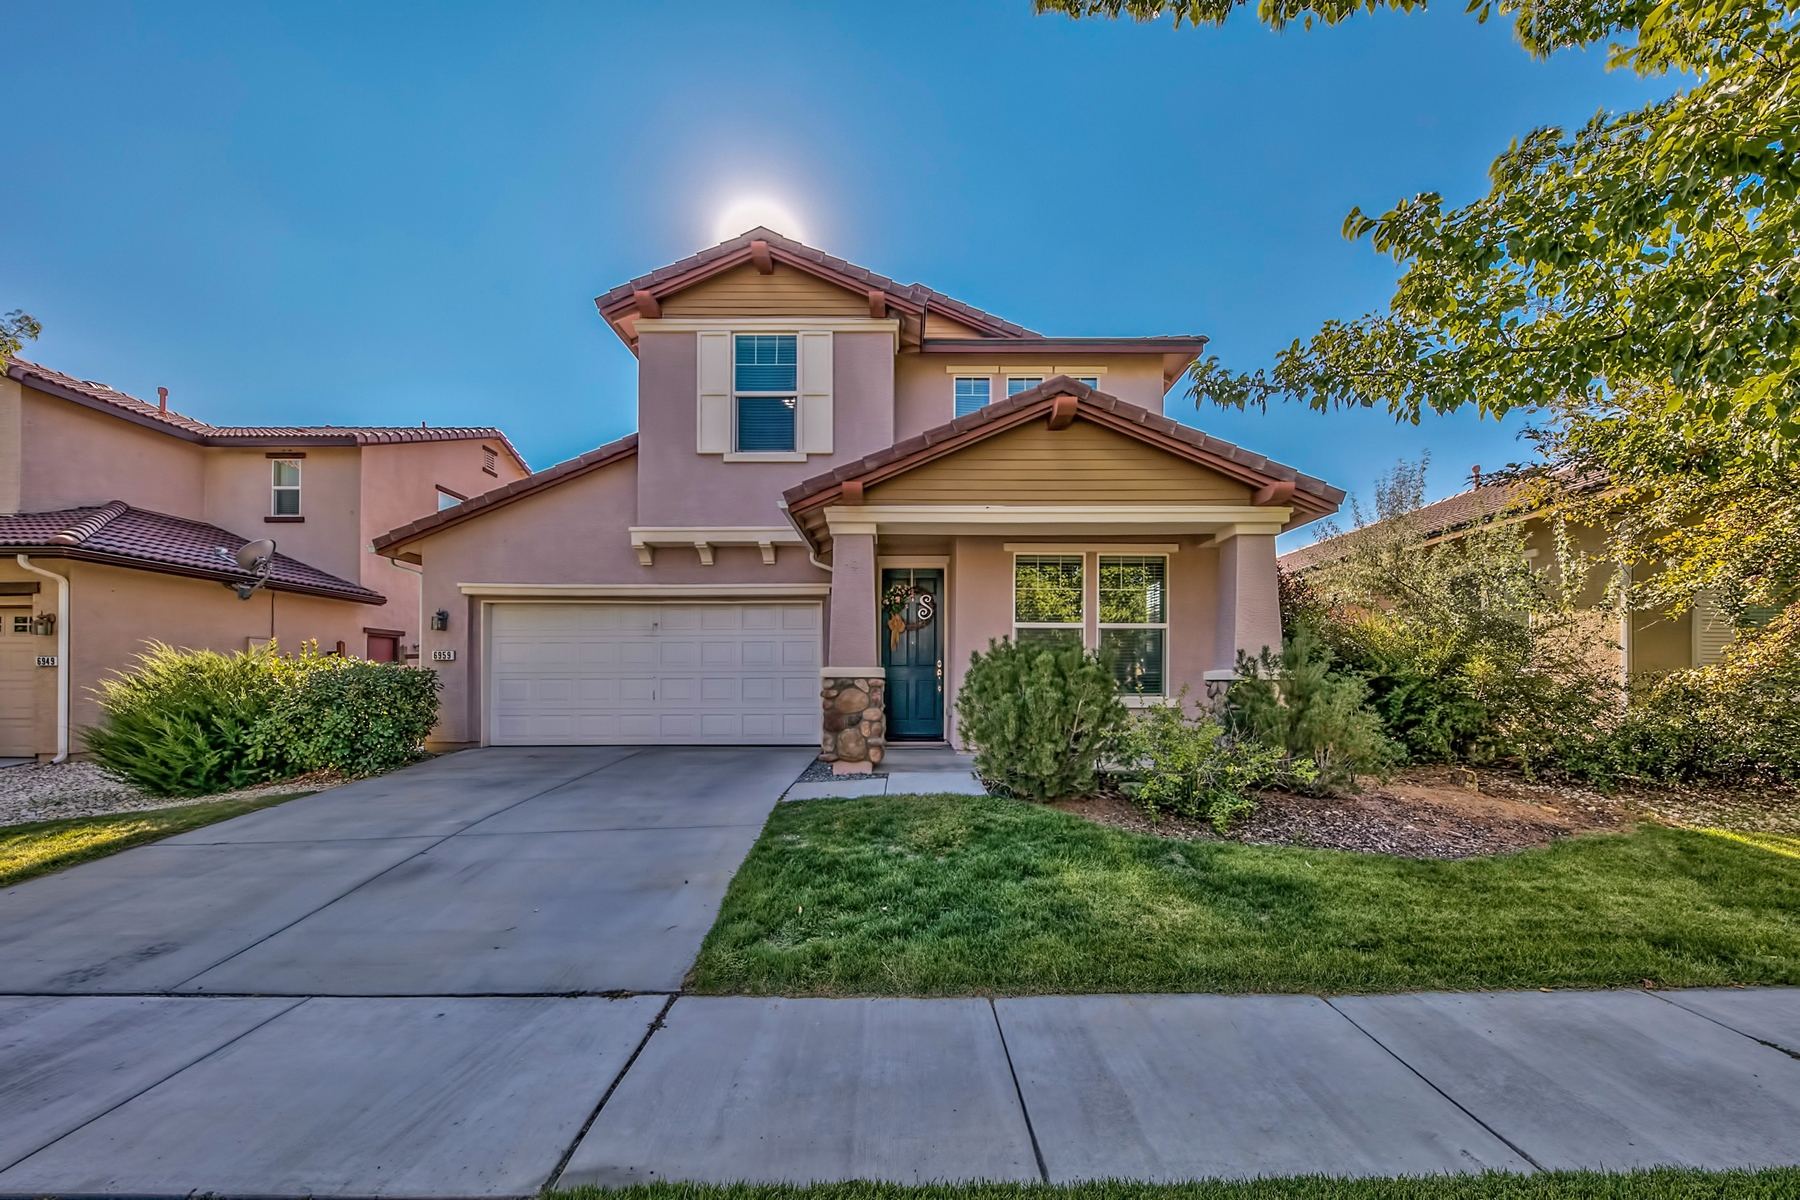 Single Family Home for Active at 6959 Rioja Court, Sparks, Nevada 6959 Rioja Court Sparks, Nevada 89436 United States